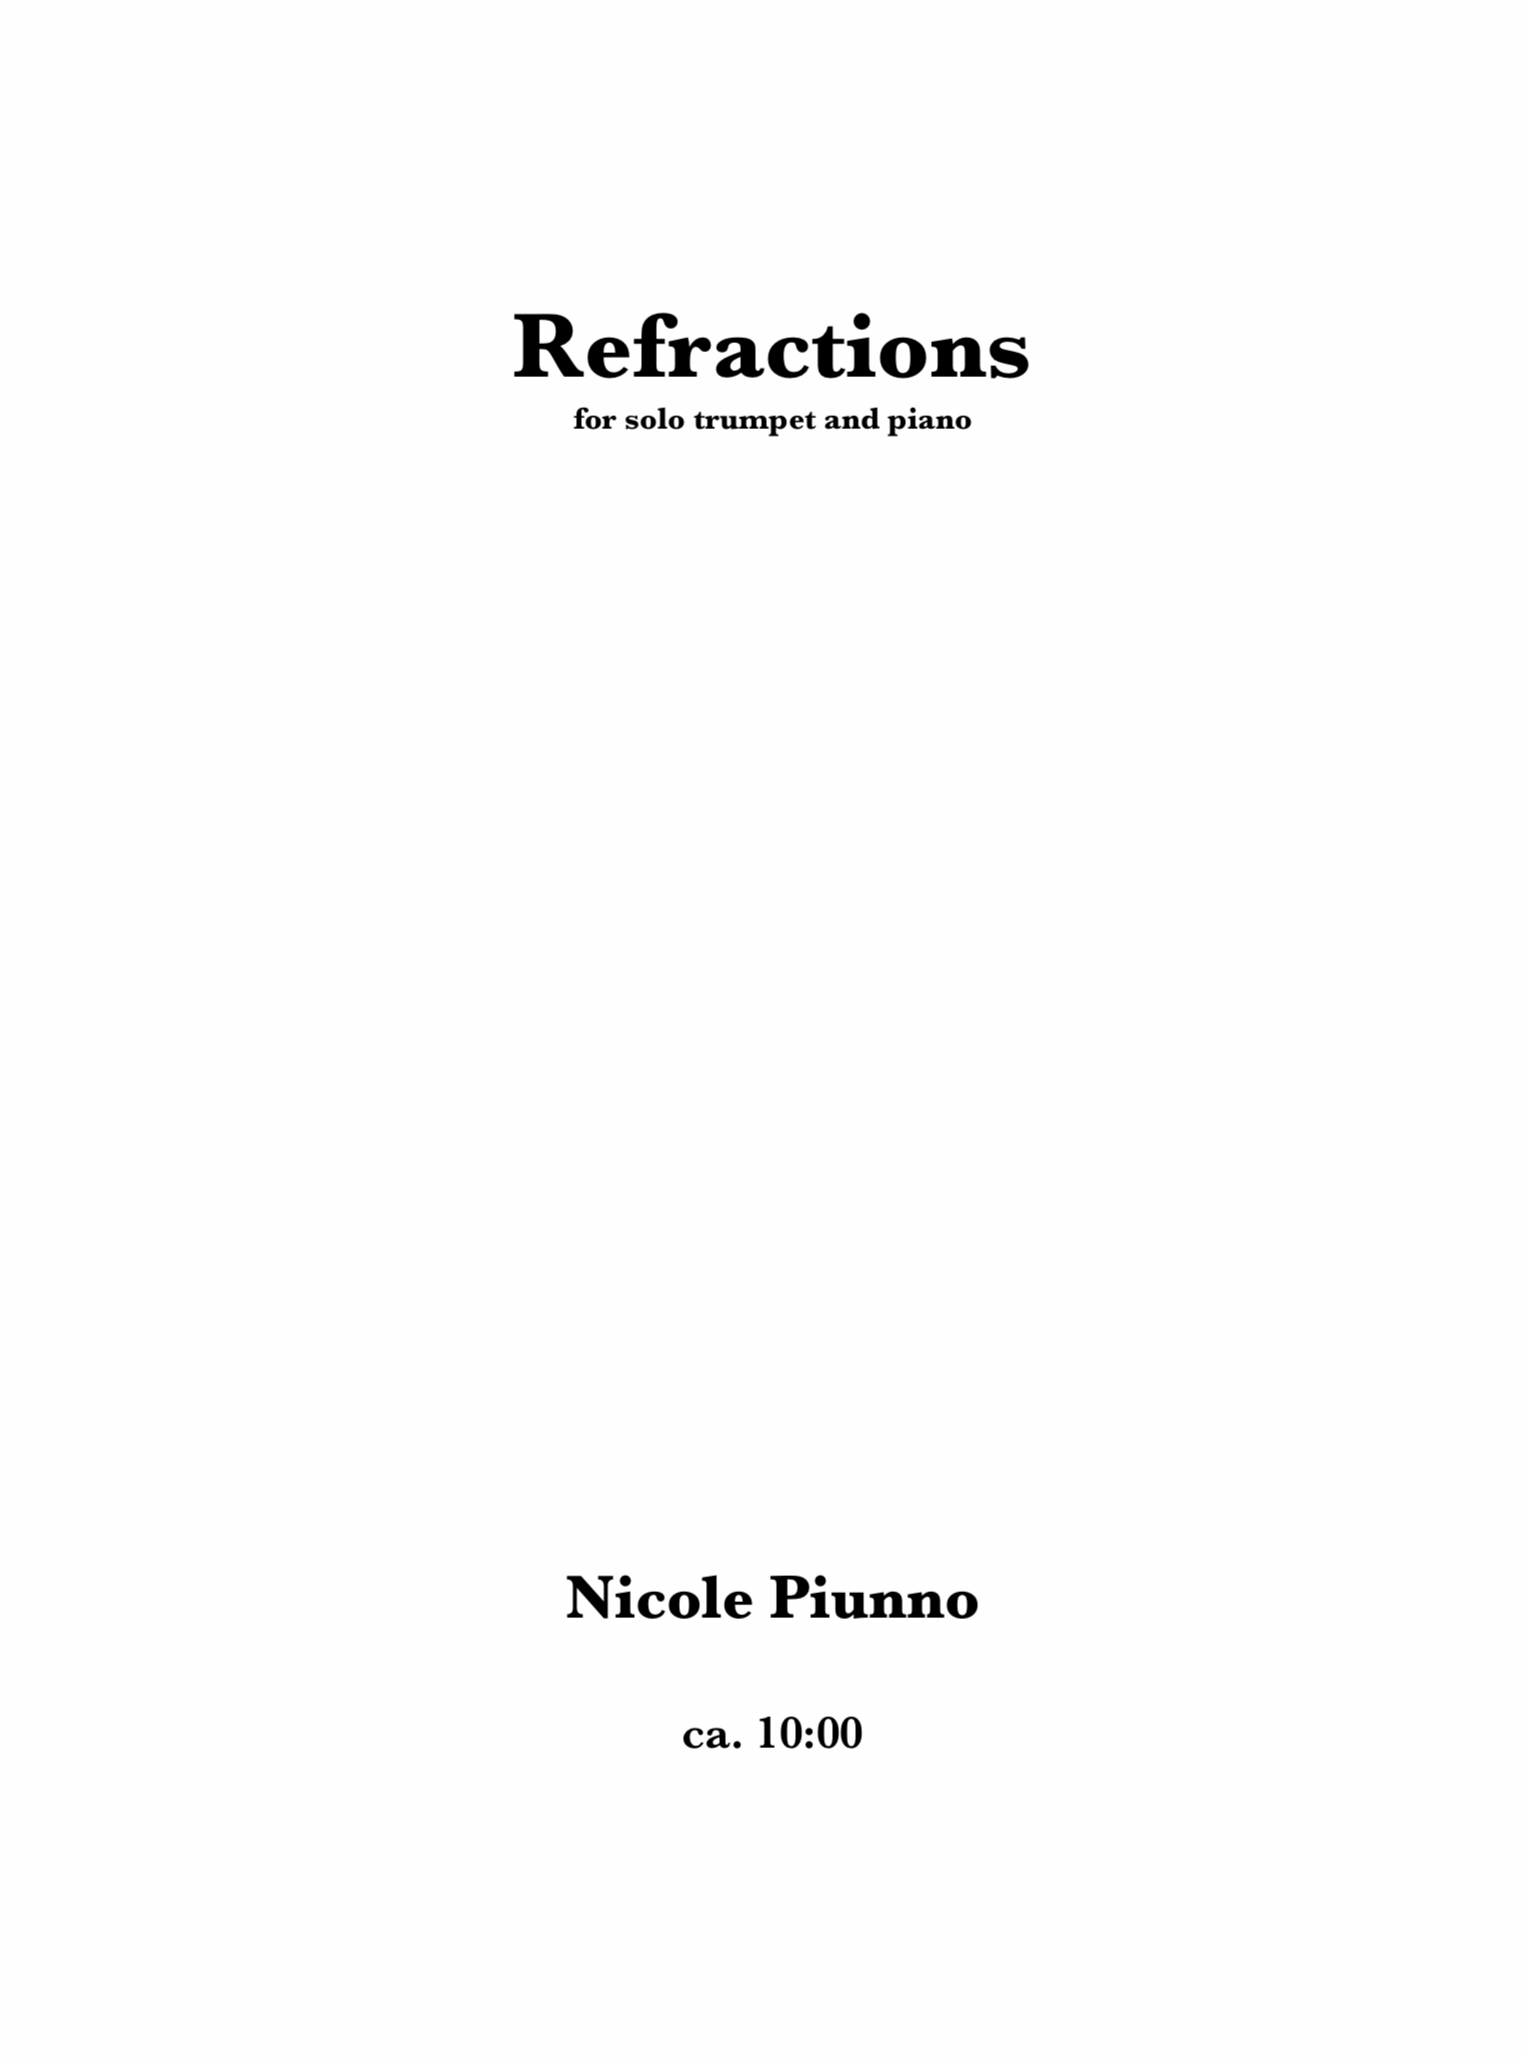 Refractions by Nicole Piunno